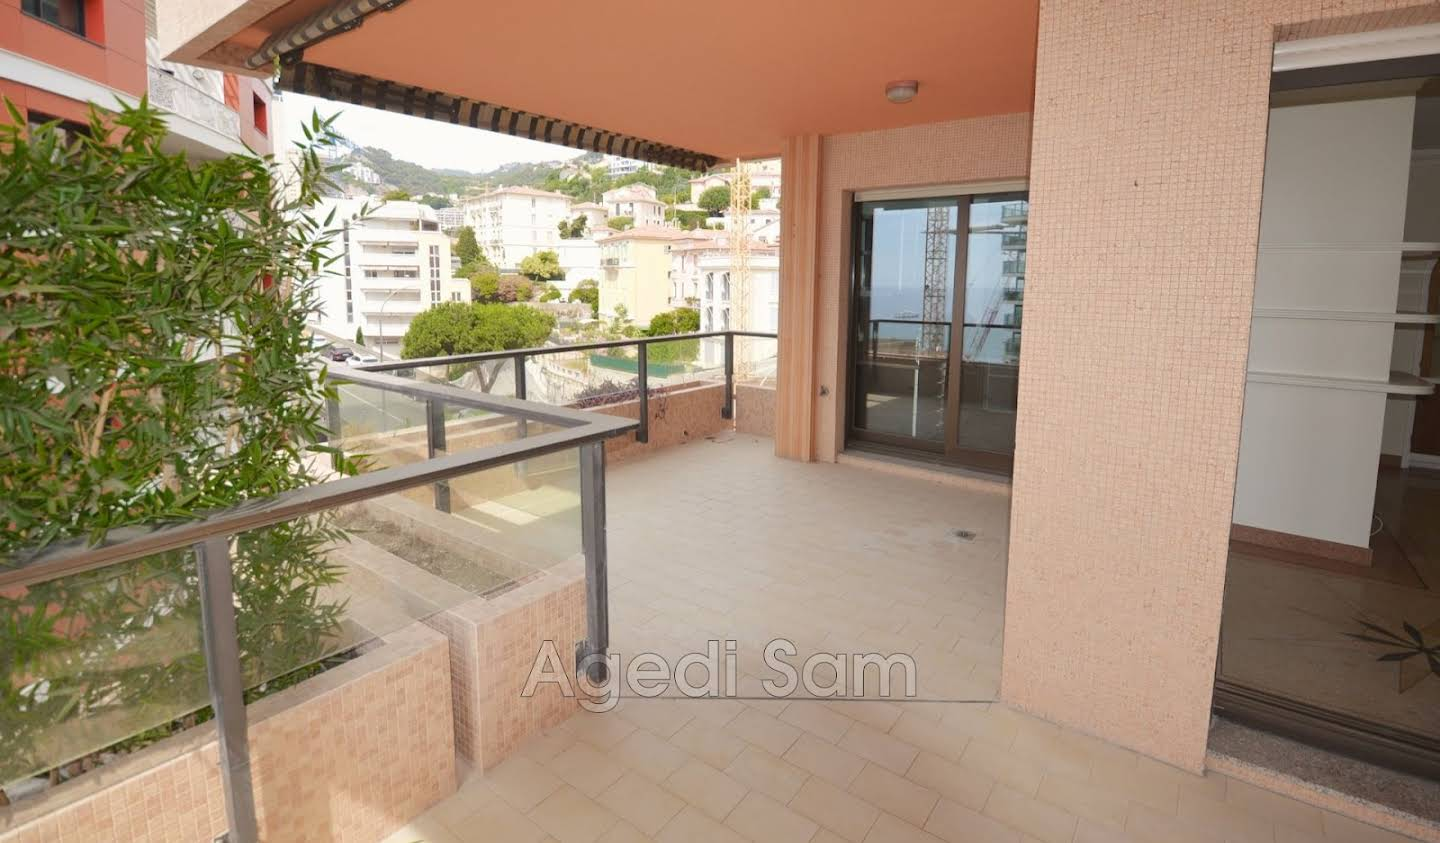 Apartment with terrace and pool Monaco